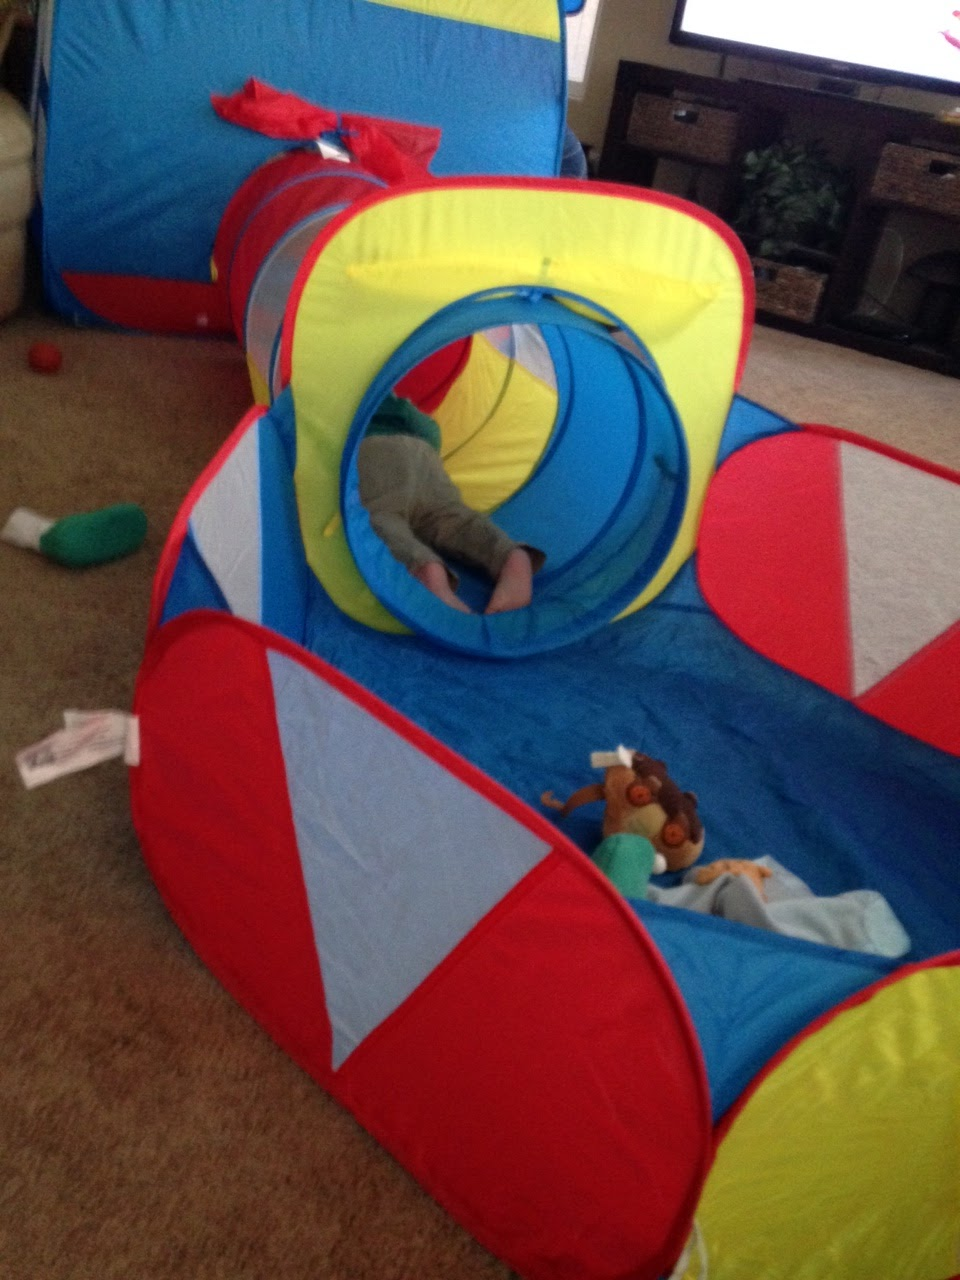 The Little Things and This n That Truedays Kids Playhouse Adventure Play Tent Indoor Outdoor Tunnel Pool 3 Pieces Set (Ball Is Not Include) & The Little Things and This n That: Truedays Kids Playhouse ...